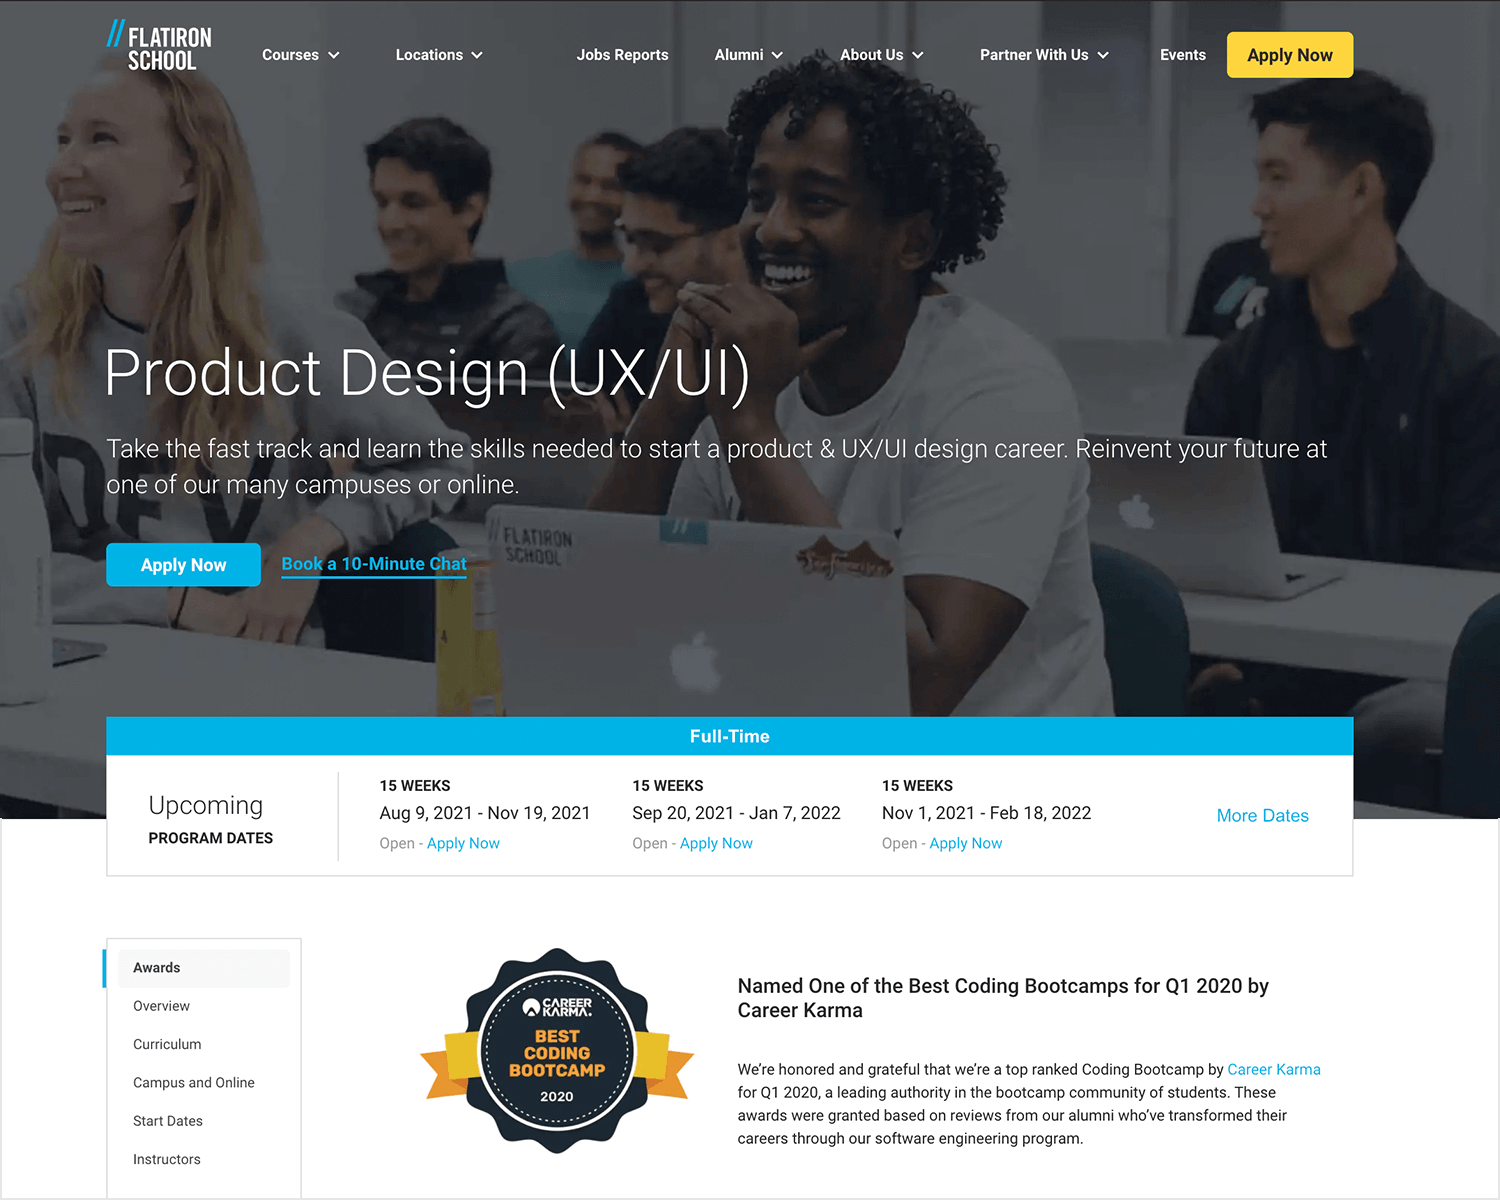 paid ux design course by flatiron